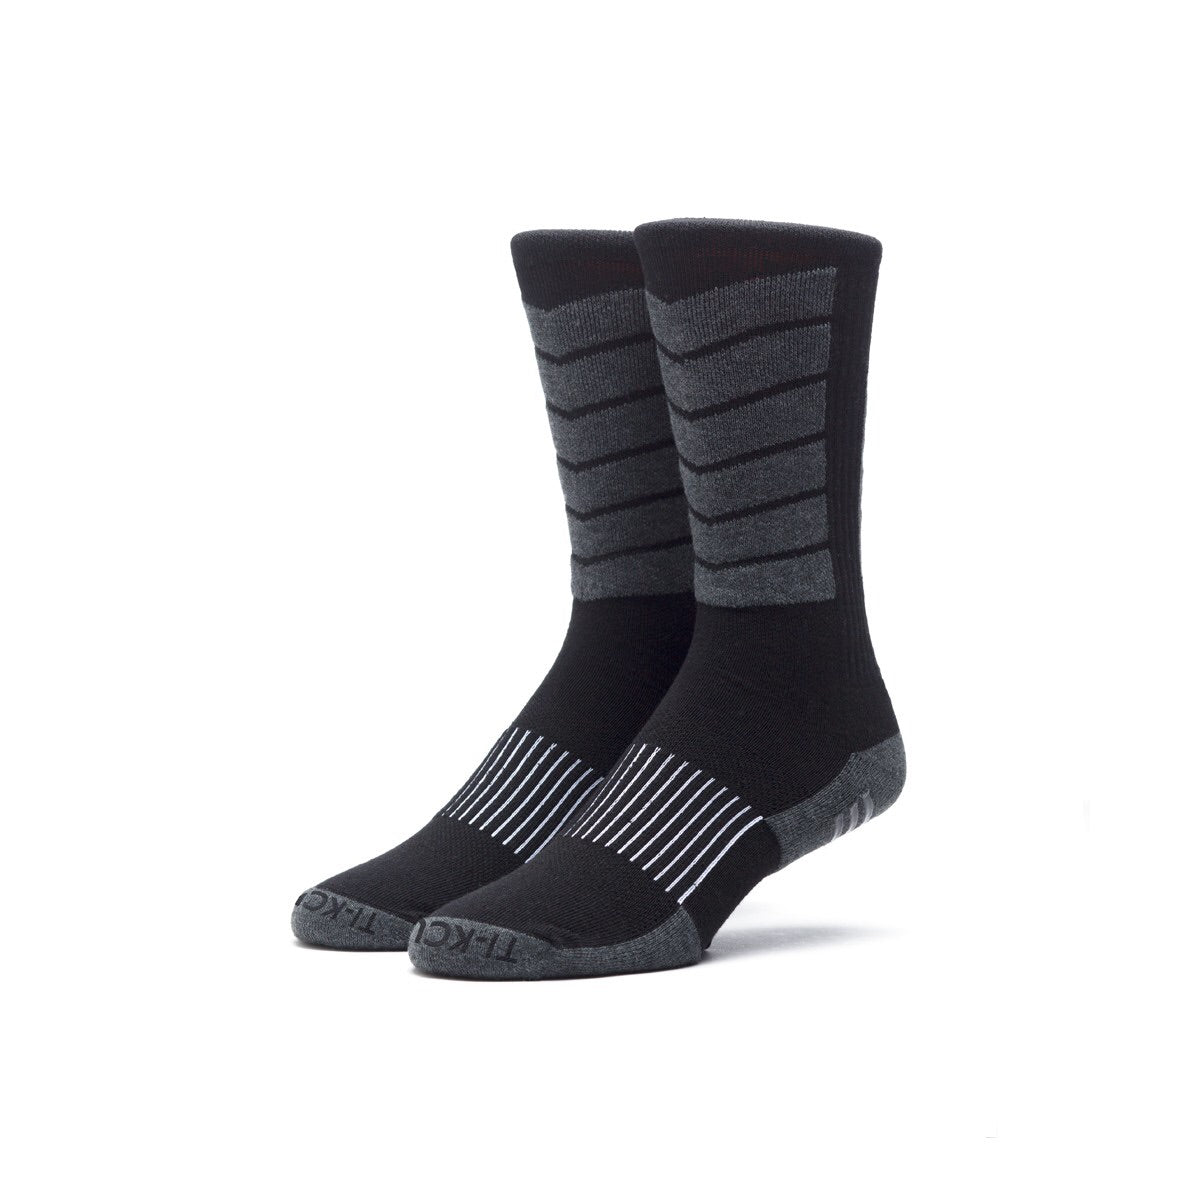 Huf Performance Plus Crew Sock Black/Charcoal